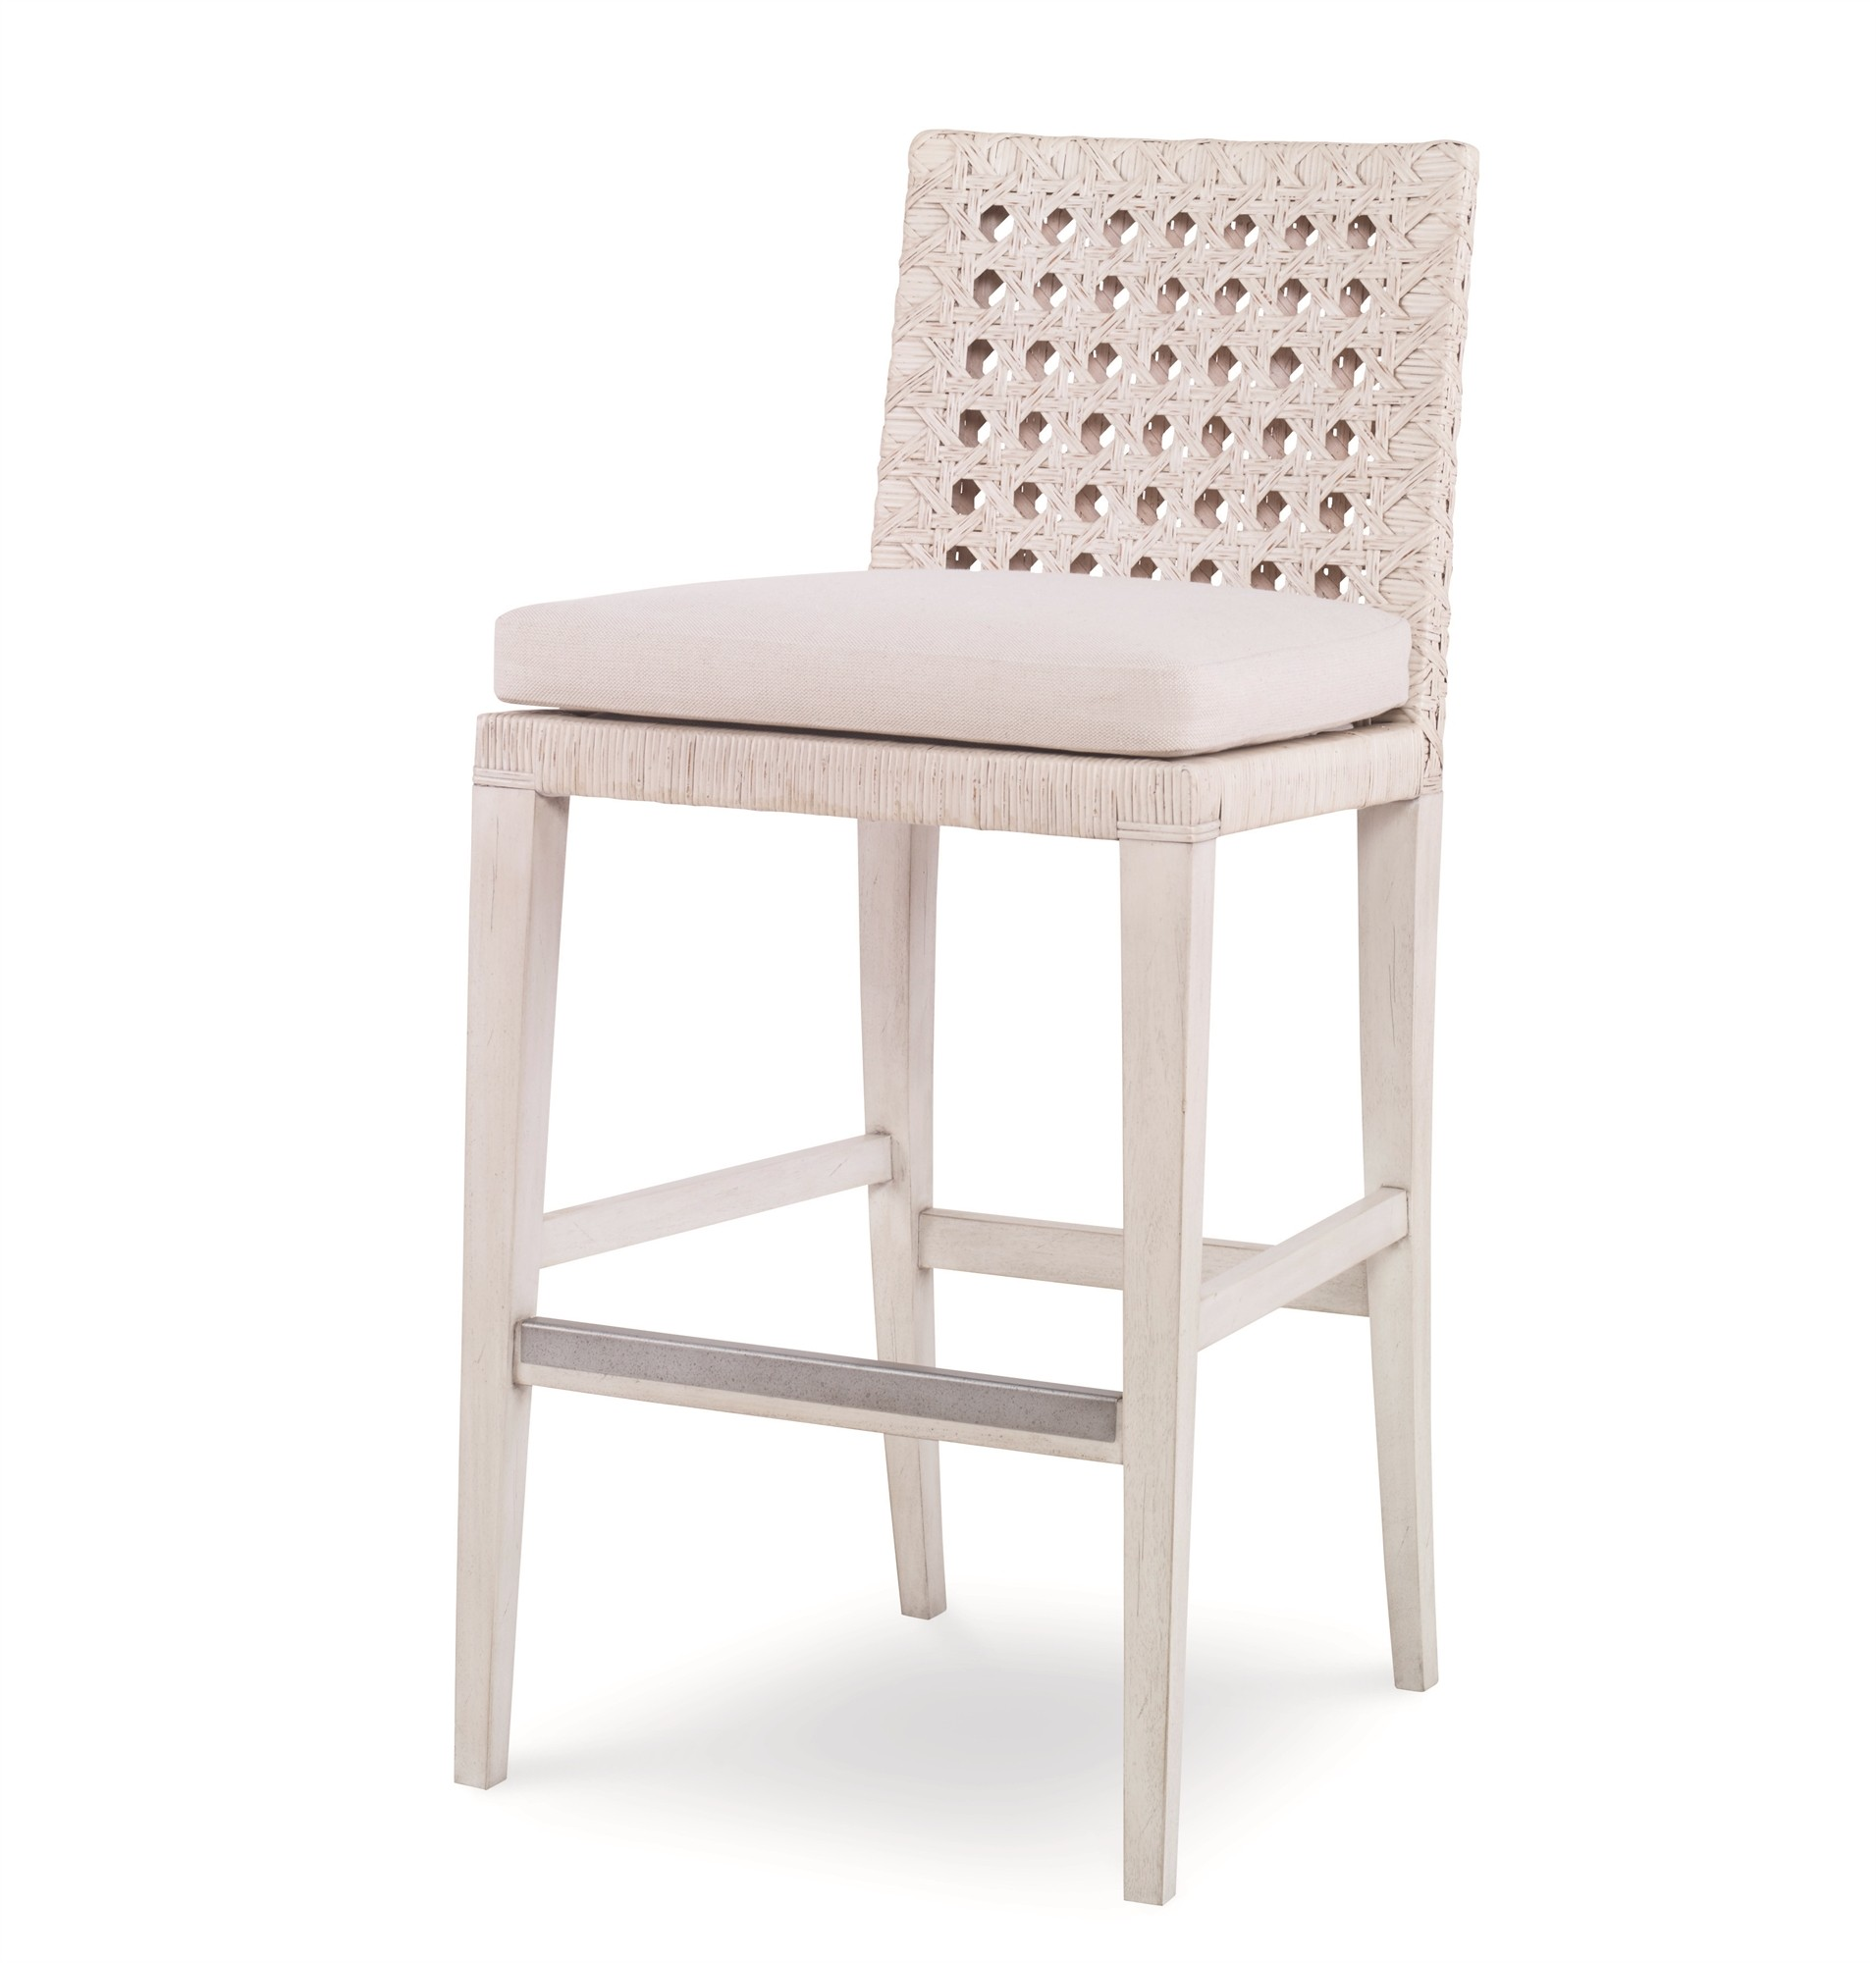 Litchfield Bar Stool-Peninsula/Flax (Lw-046-105-07)